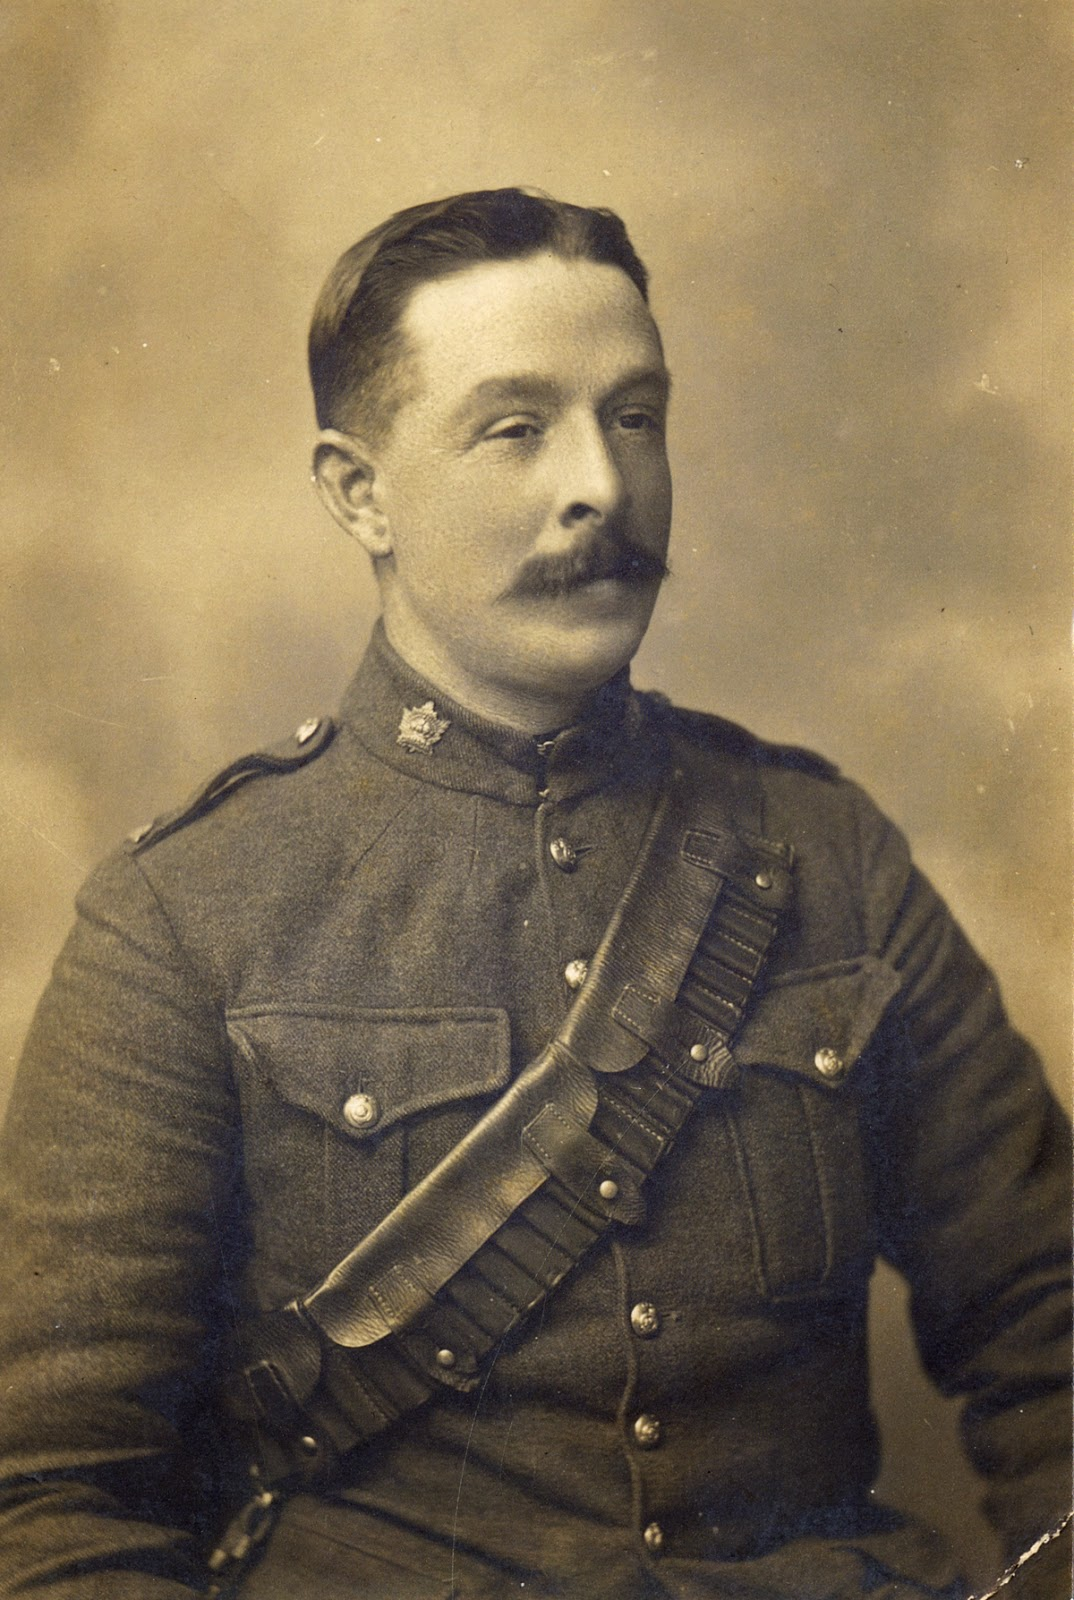 George Bathgate is believed to be the first Lethbridge man to enlist for service in the Great War. He travelled to Valcartier, Quebec with the first contingent from the 25th Independent Battery and served as driver on the lead gun team.  Courtesy the Galt Museum & Archives: 20141015